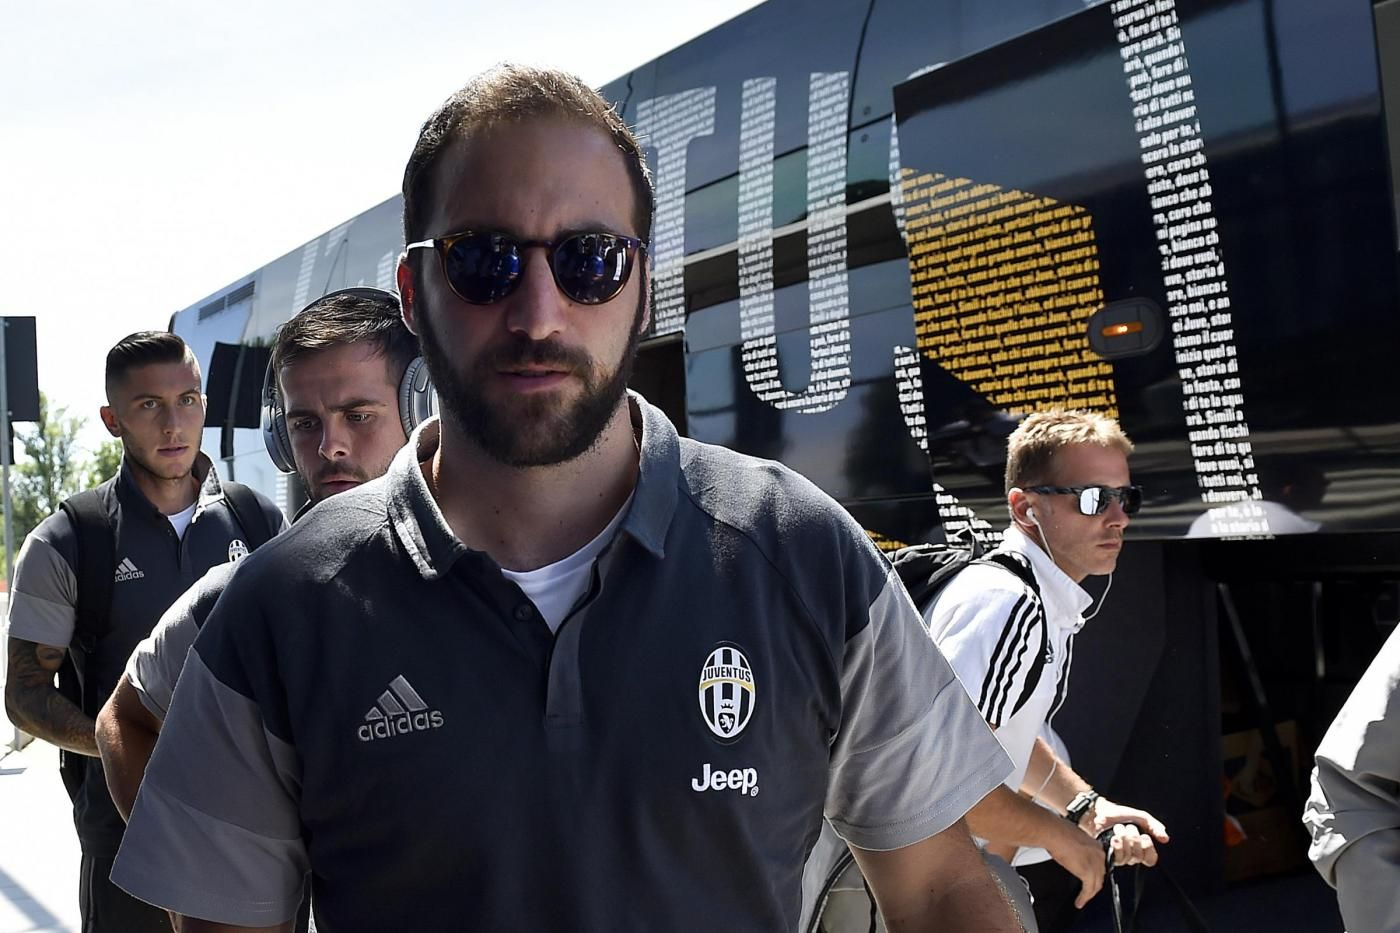 Juve, welcome to London